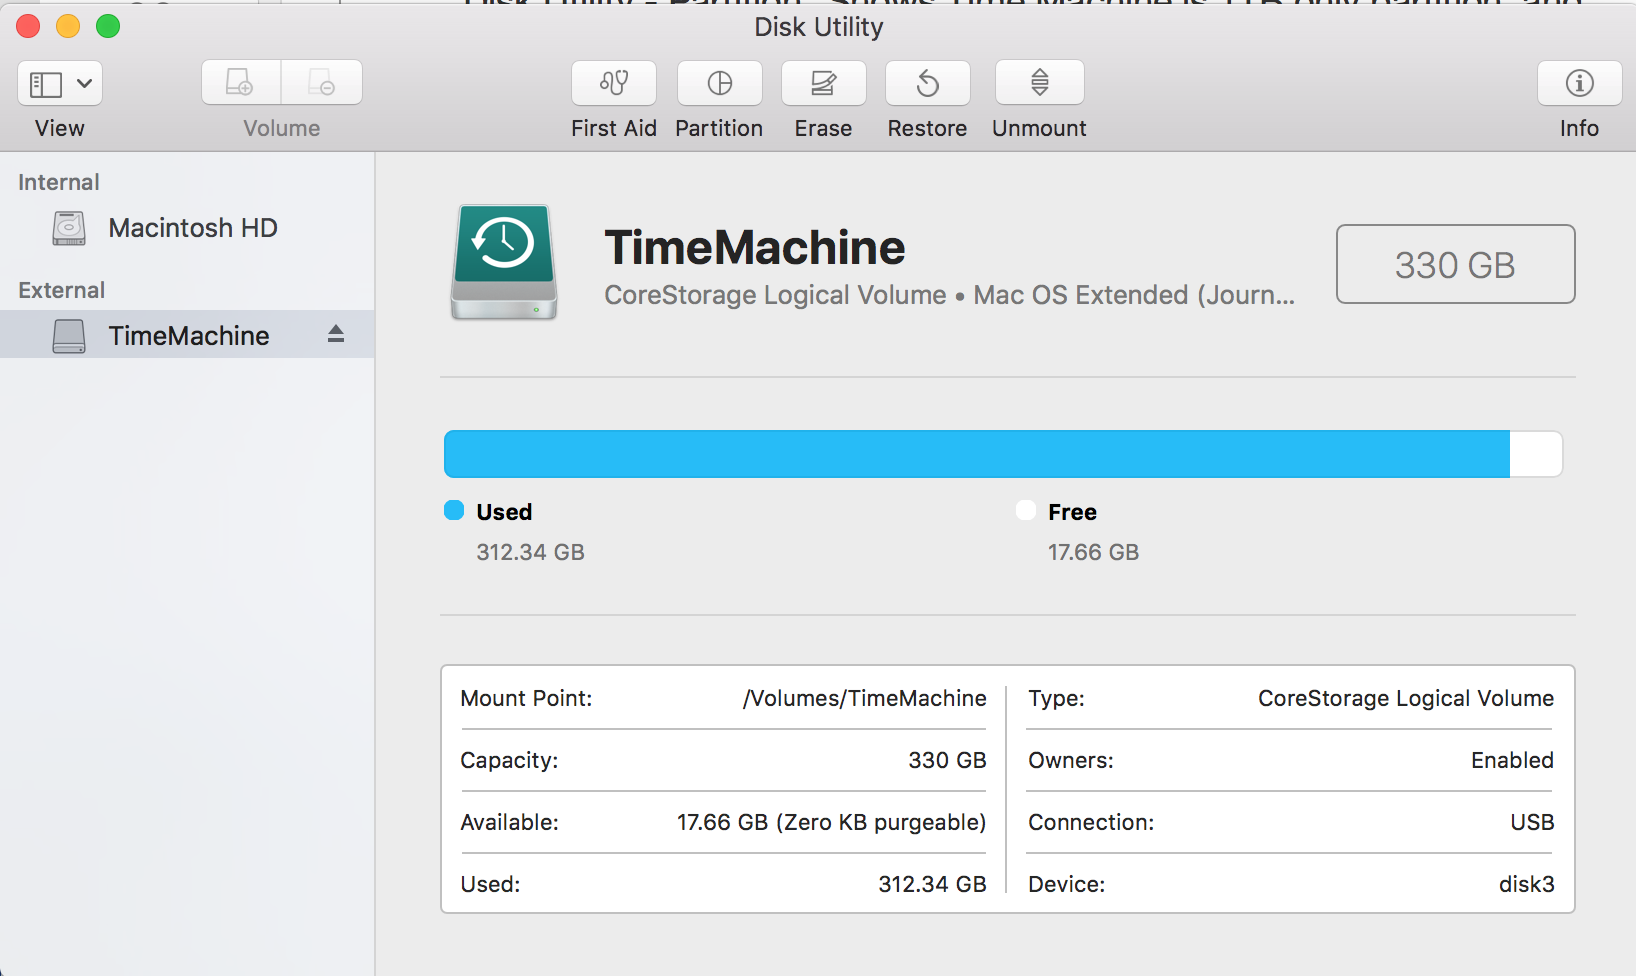 Removed Partition, Lost Capacity - Apple Community